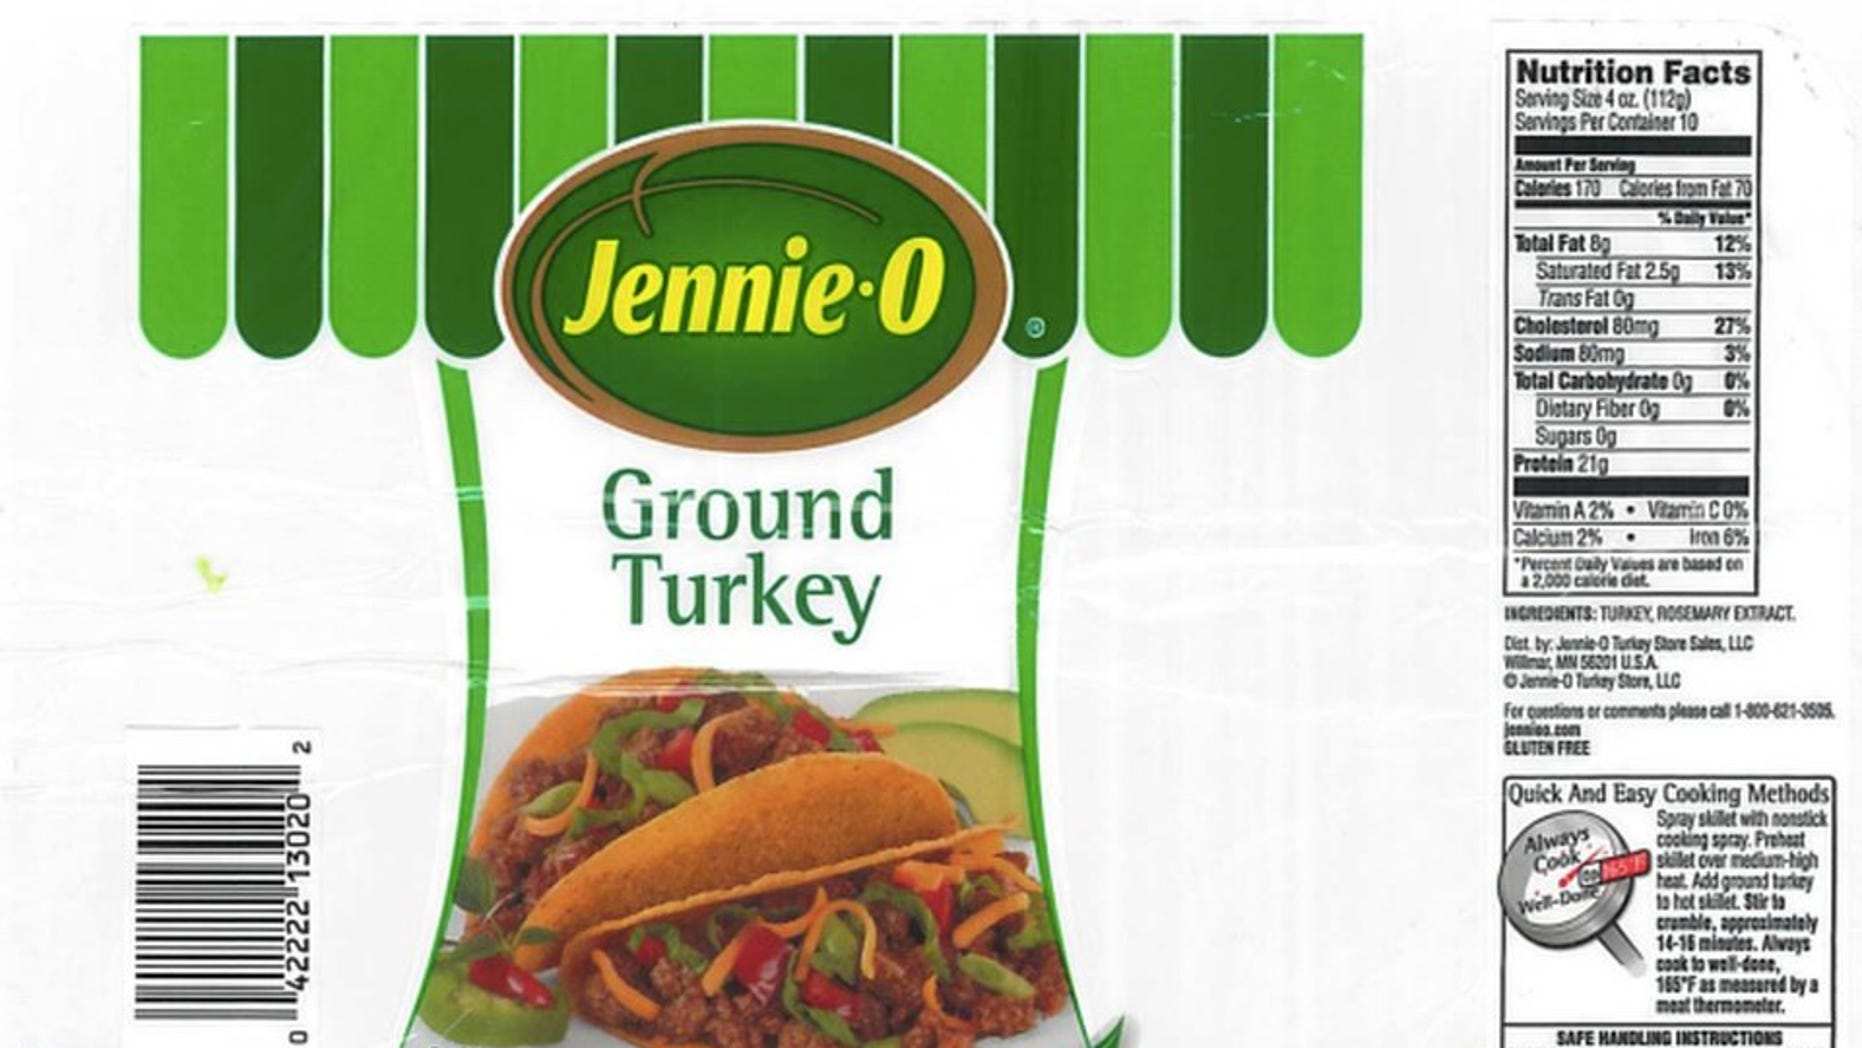 Jennie-O Recalls Raw Ground Turkey Products